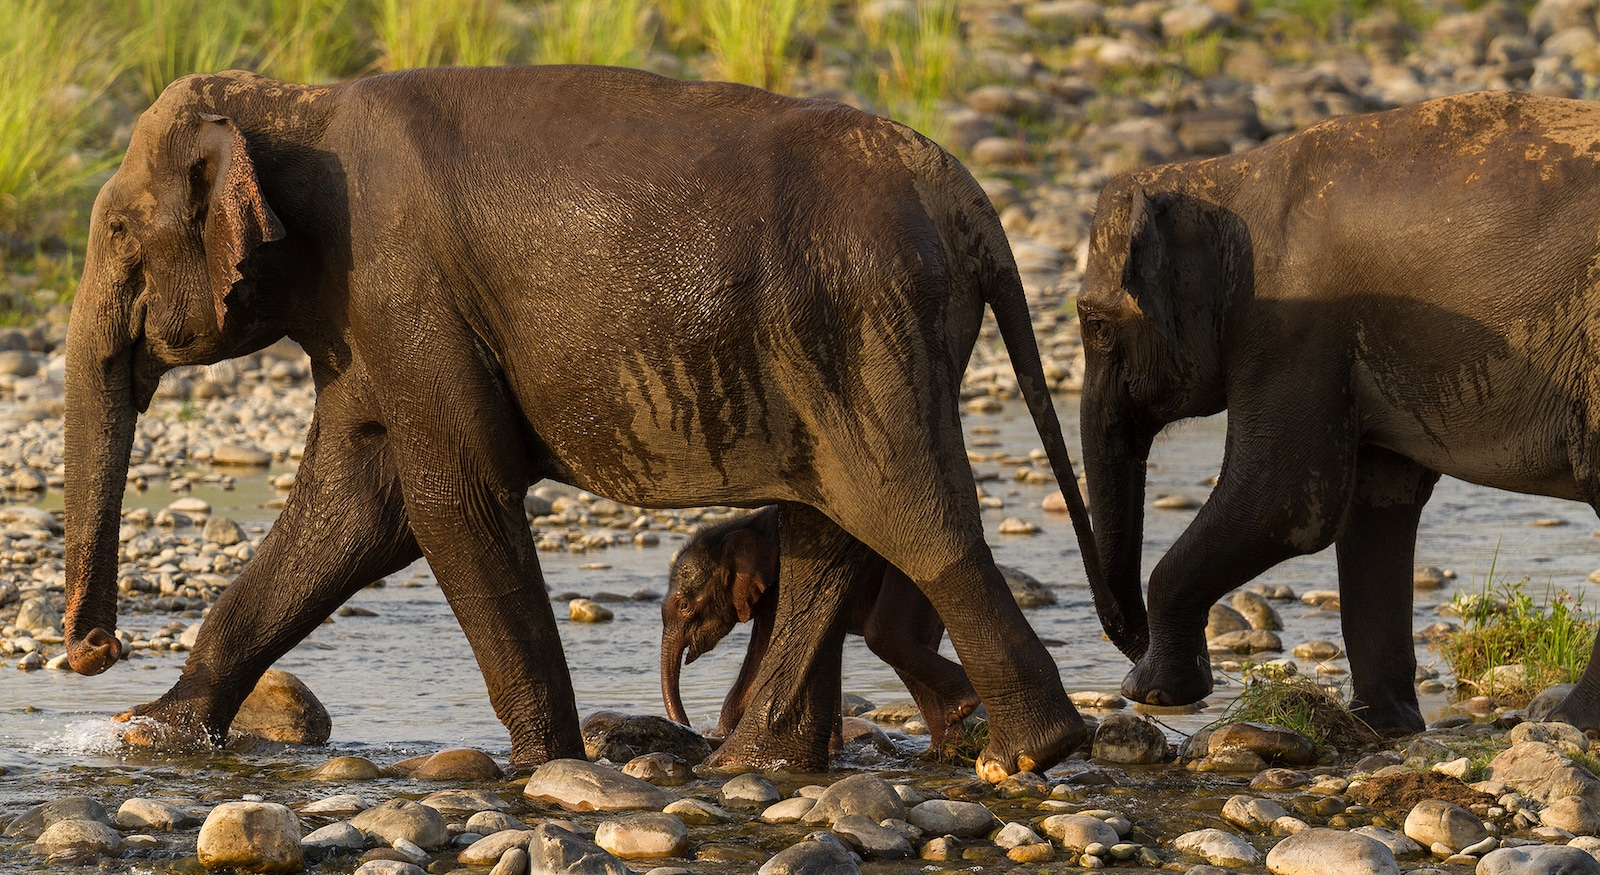 Elephants are led by the oldest and largest female in the herd known as the matriarch. Females in the herd always watch over calves. Photo: Arindam Bhattacharya